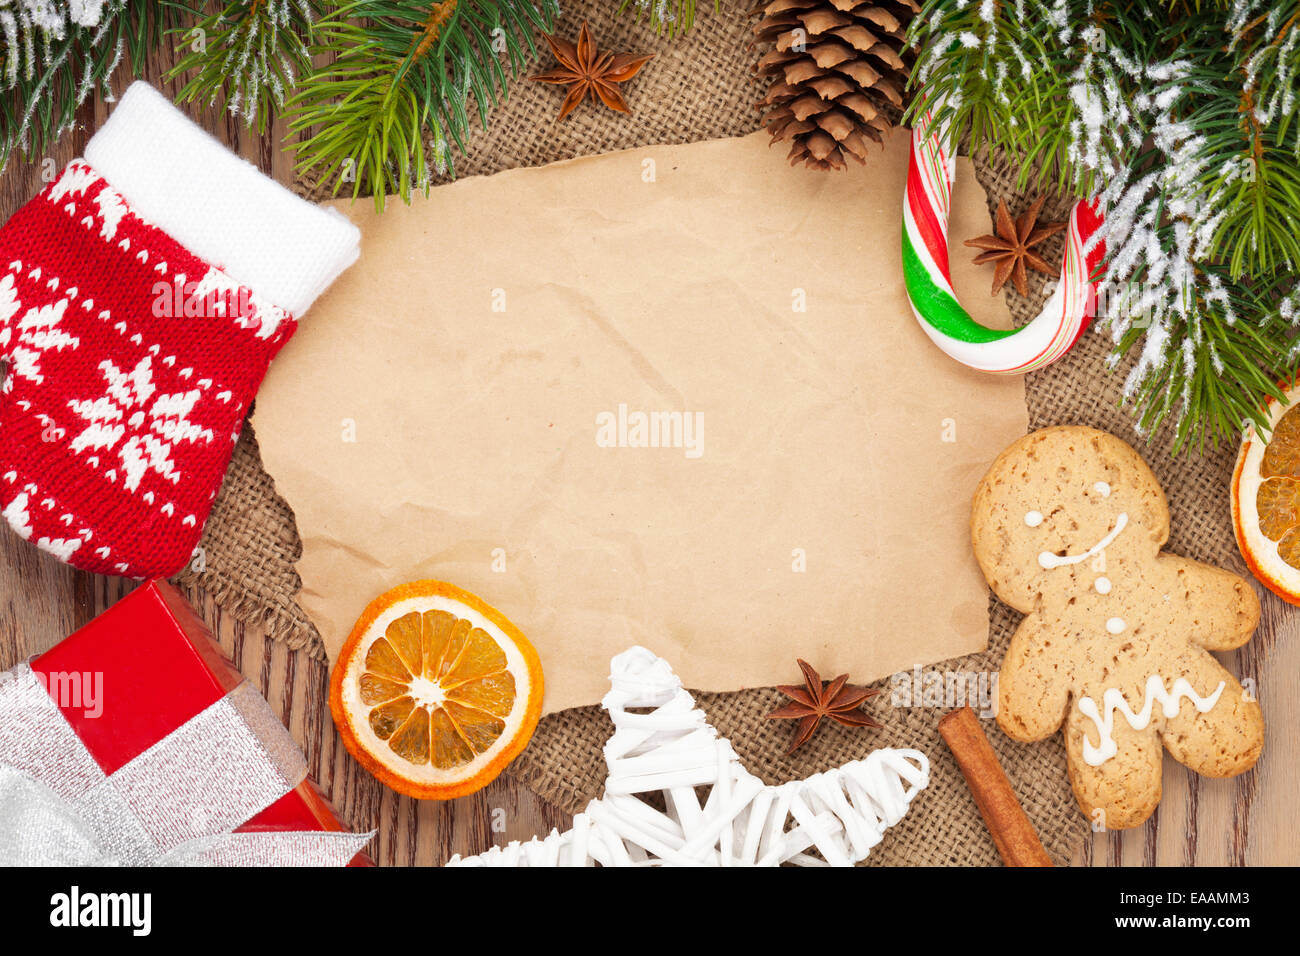 Christmas food and decor with snow fir tree background with paper for copy space - Stock Image